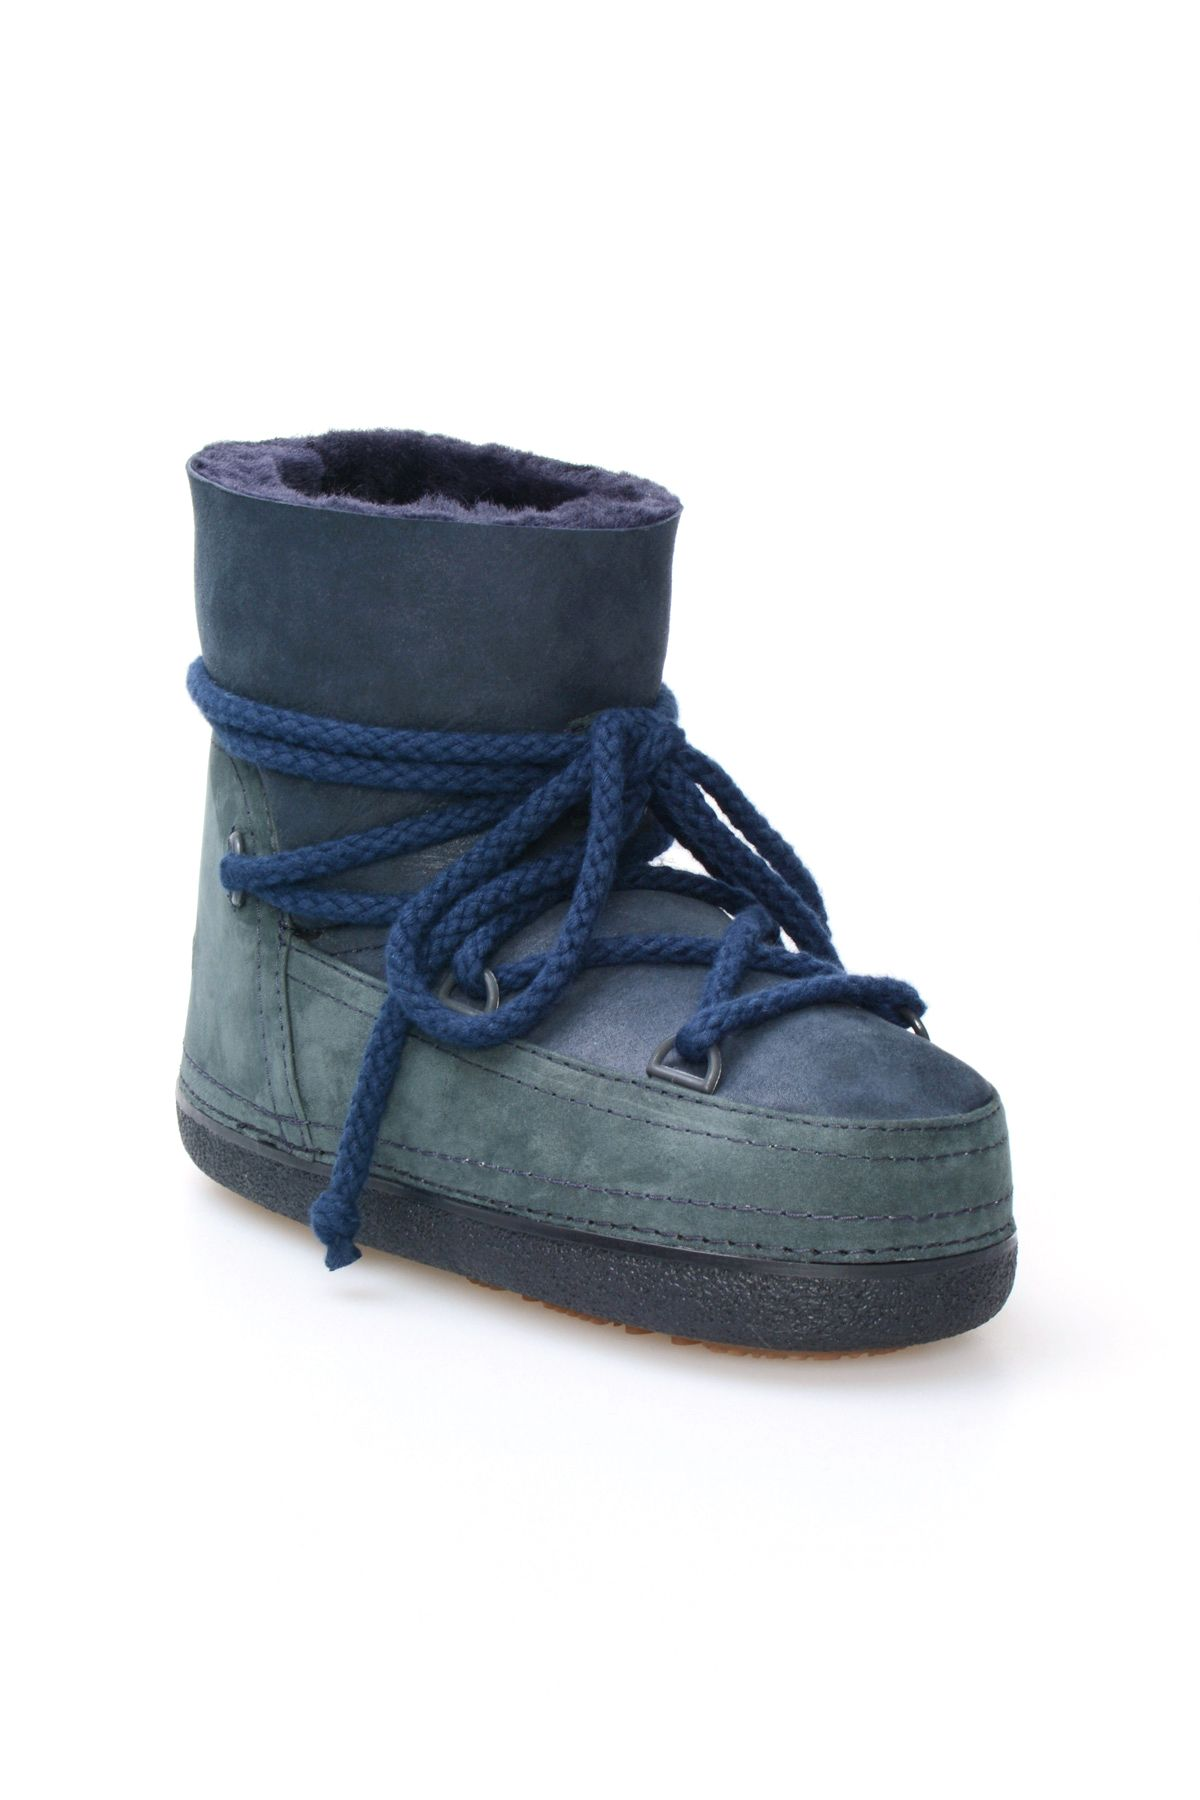 Cool Moon Genuine Leather & Shearling Women's Snowboots 251040 Navy blue